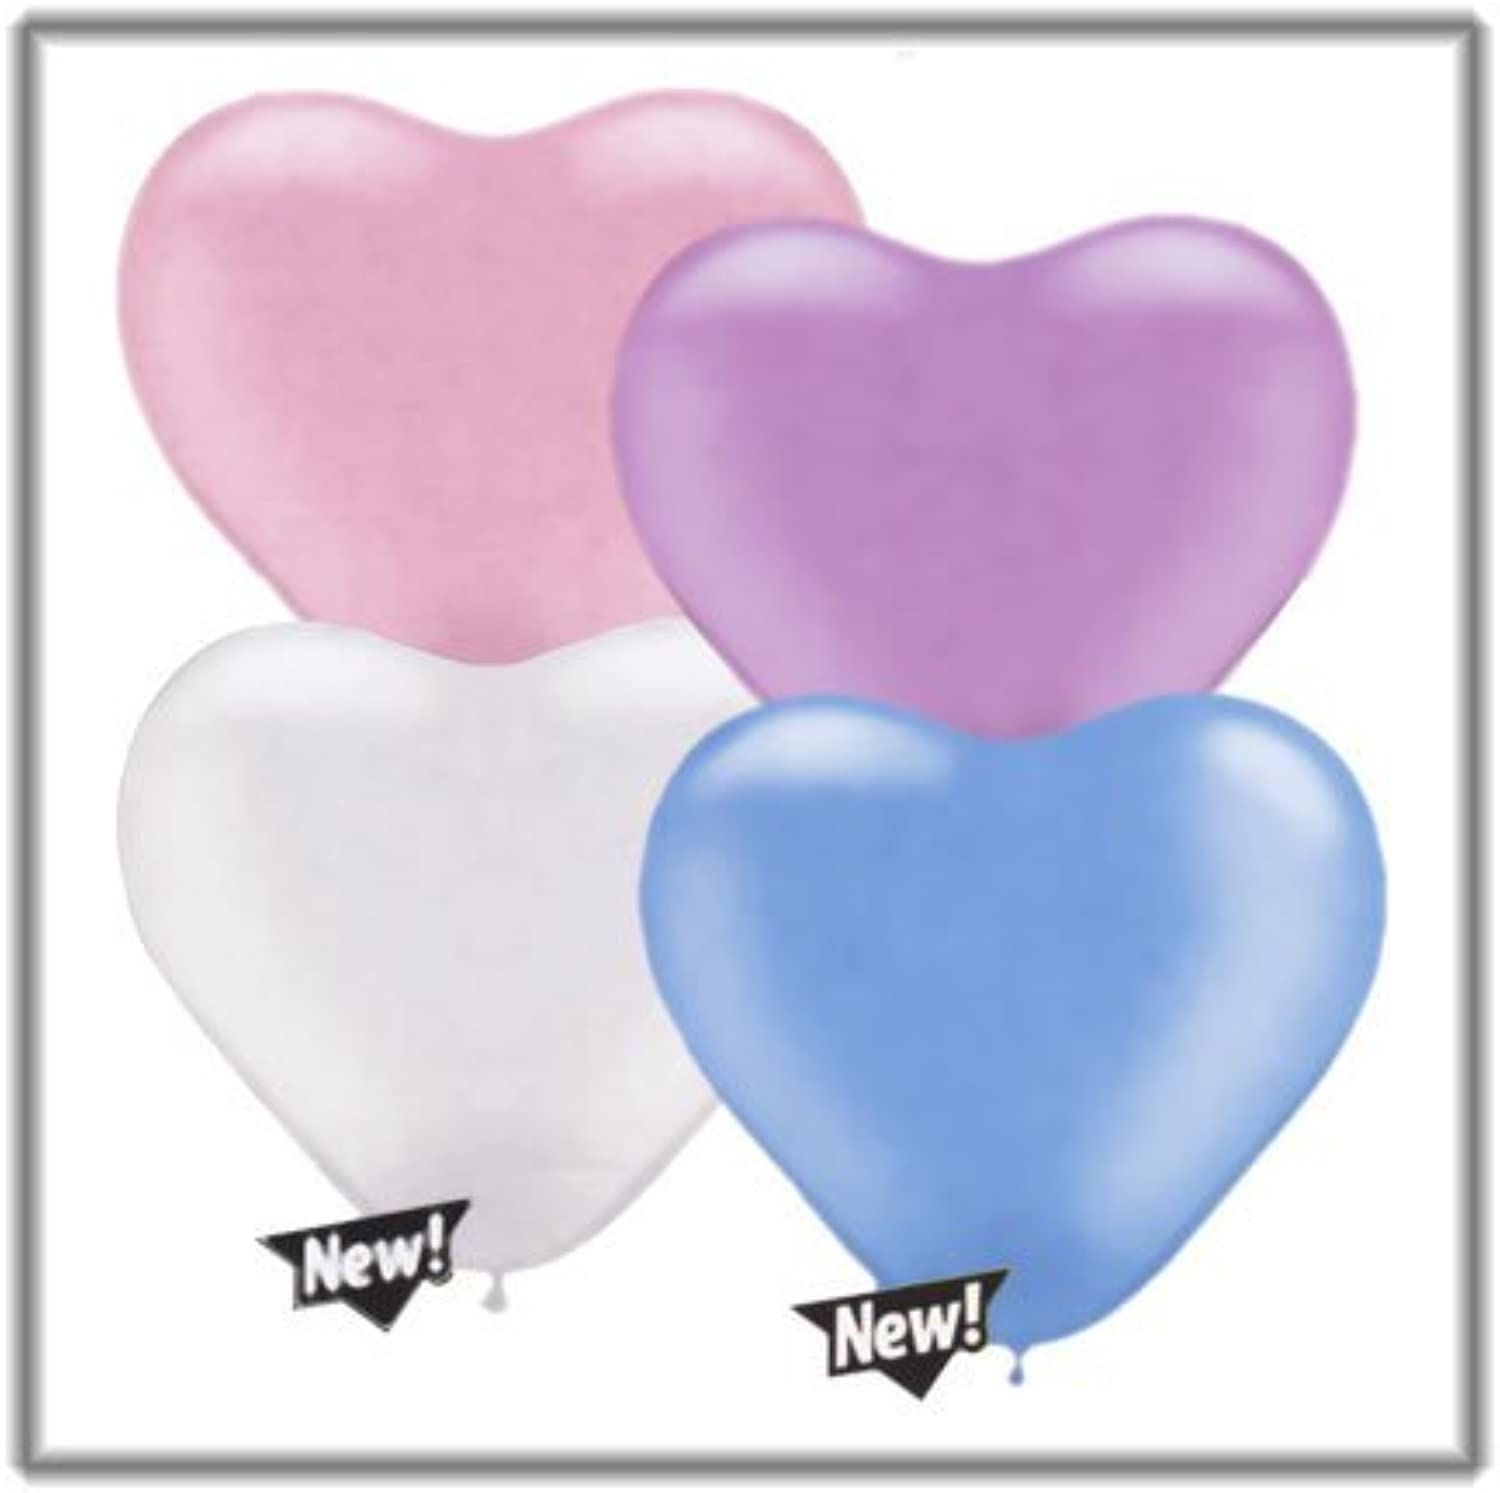 Qualatex 6  Heart Balloons, Pastel Pearl Assortment (bluee, Lavender, Pink, White) - Pack of 100